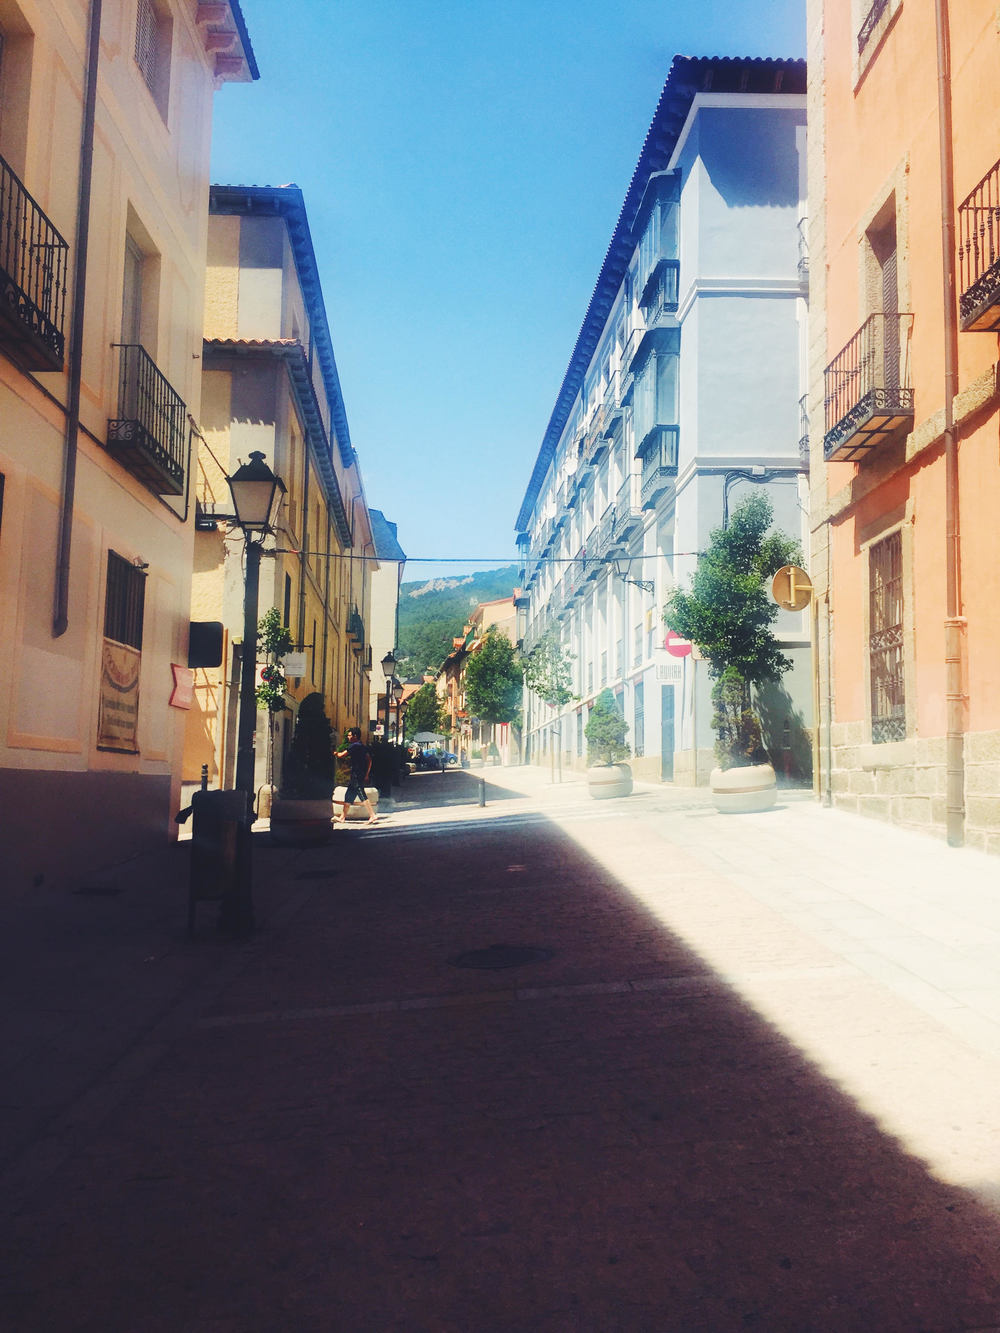 Spain in 2 Weeks: Photo Travel Guide. Madrid: The streets of El Escorial